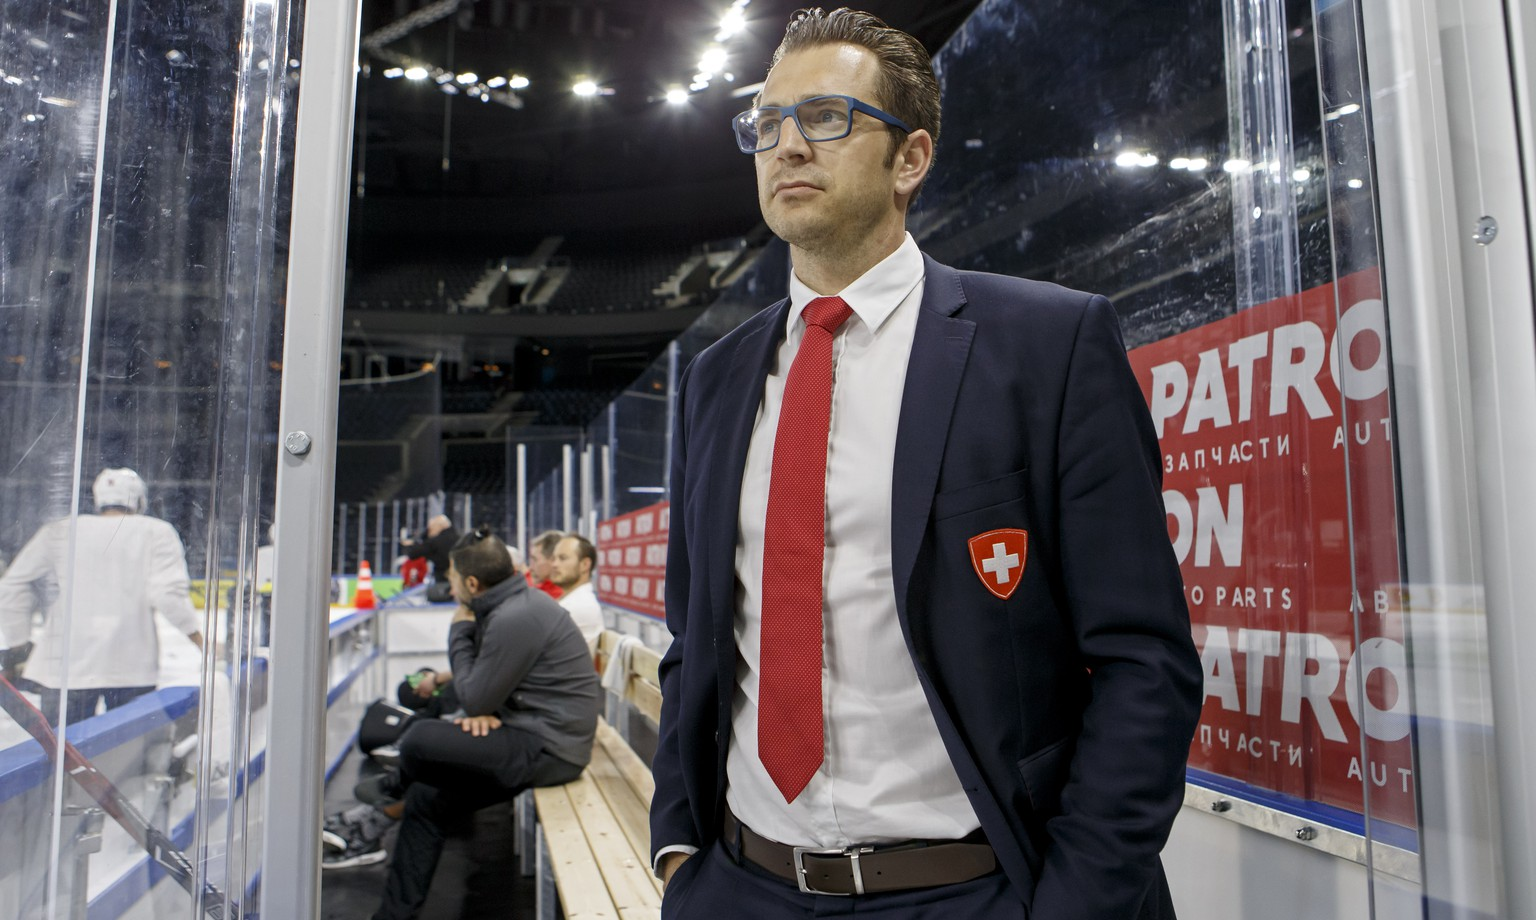 Raeto Raffainer, center, Director of National Teams of the Swiss Ice Hockey, looks the Switzerland's players, during a Swiss team training optional session of the IIHF 2018 World Championship, at the Royal Arena, in Copenhagen, Denmark, Friday, May 18, 2018. (KEYSTONE/Salvatore Di Nolfi)